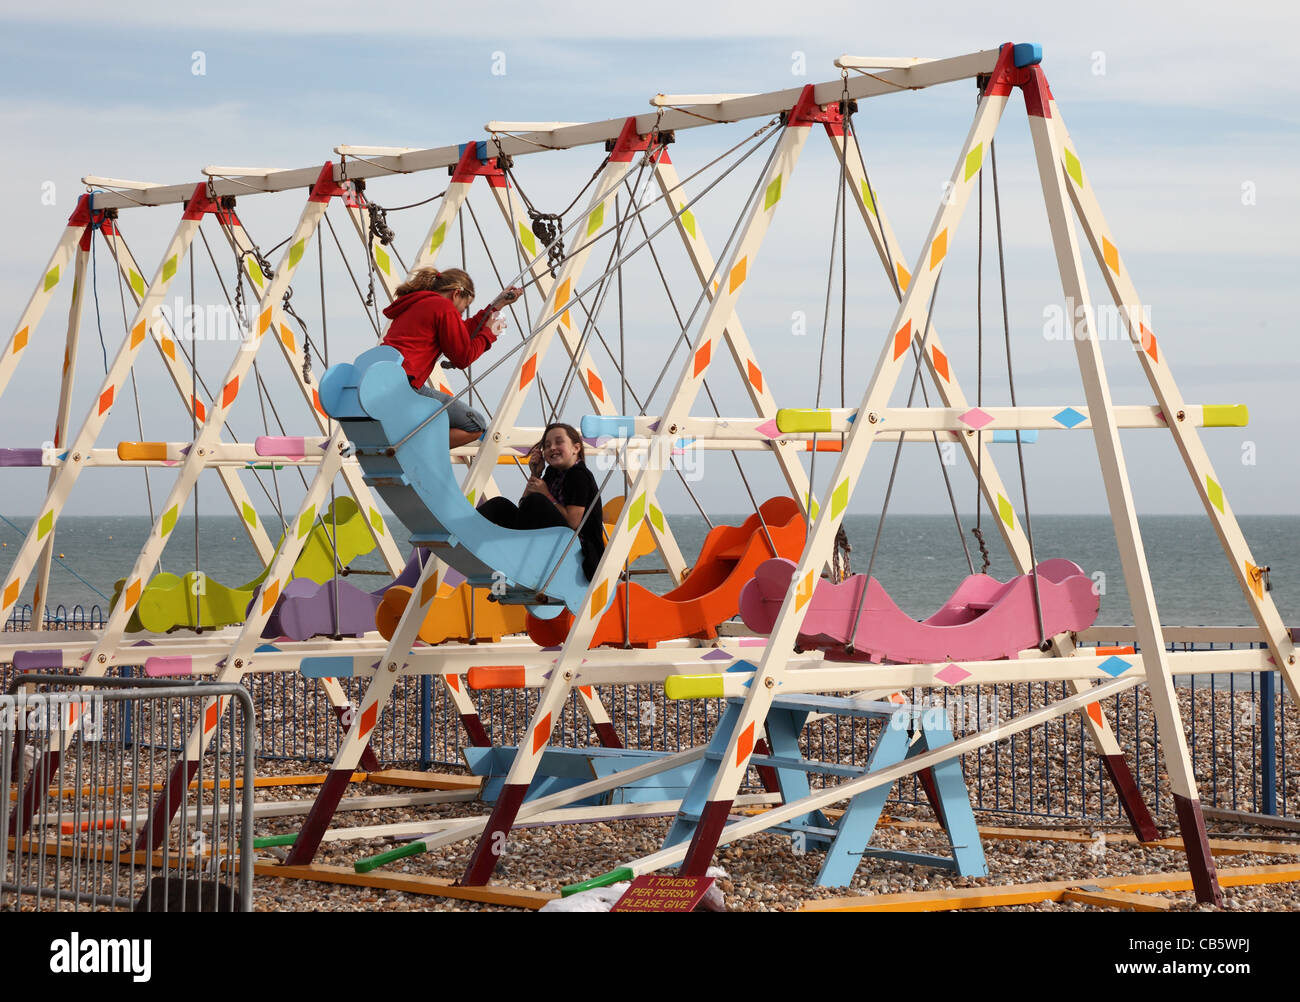 childrens-fair-ground-swings-bognor-regis-west-sussex-CB5WPJ.jpg